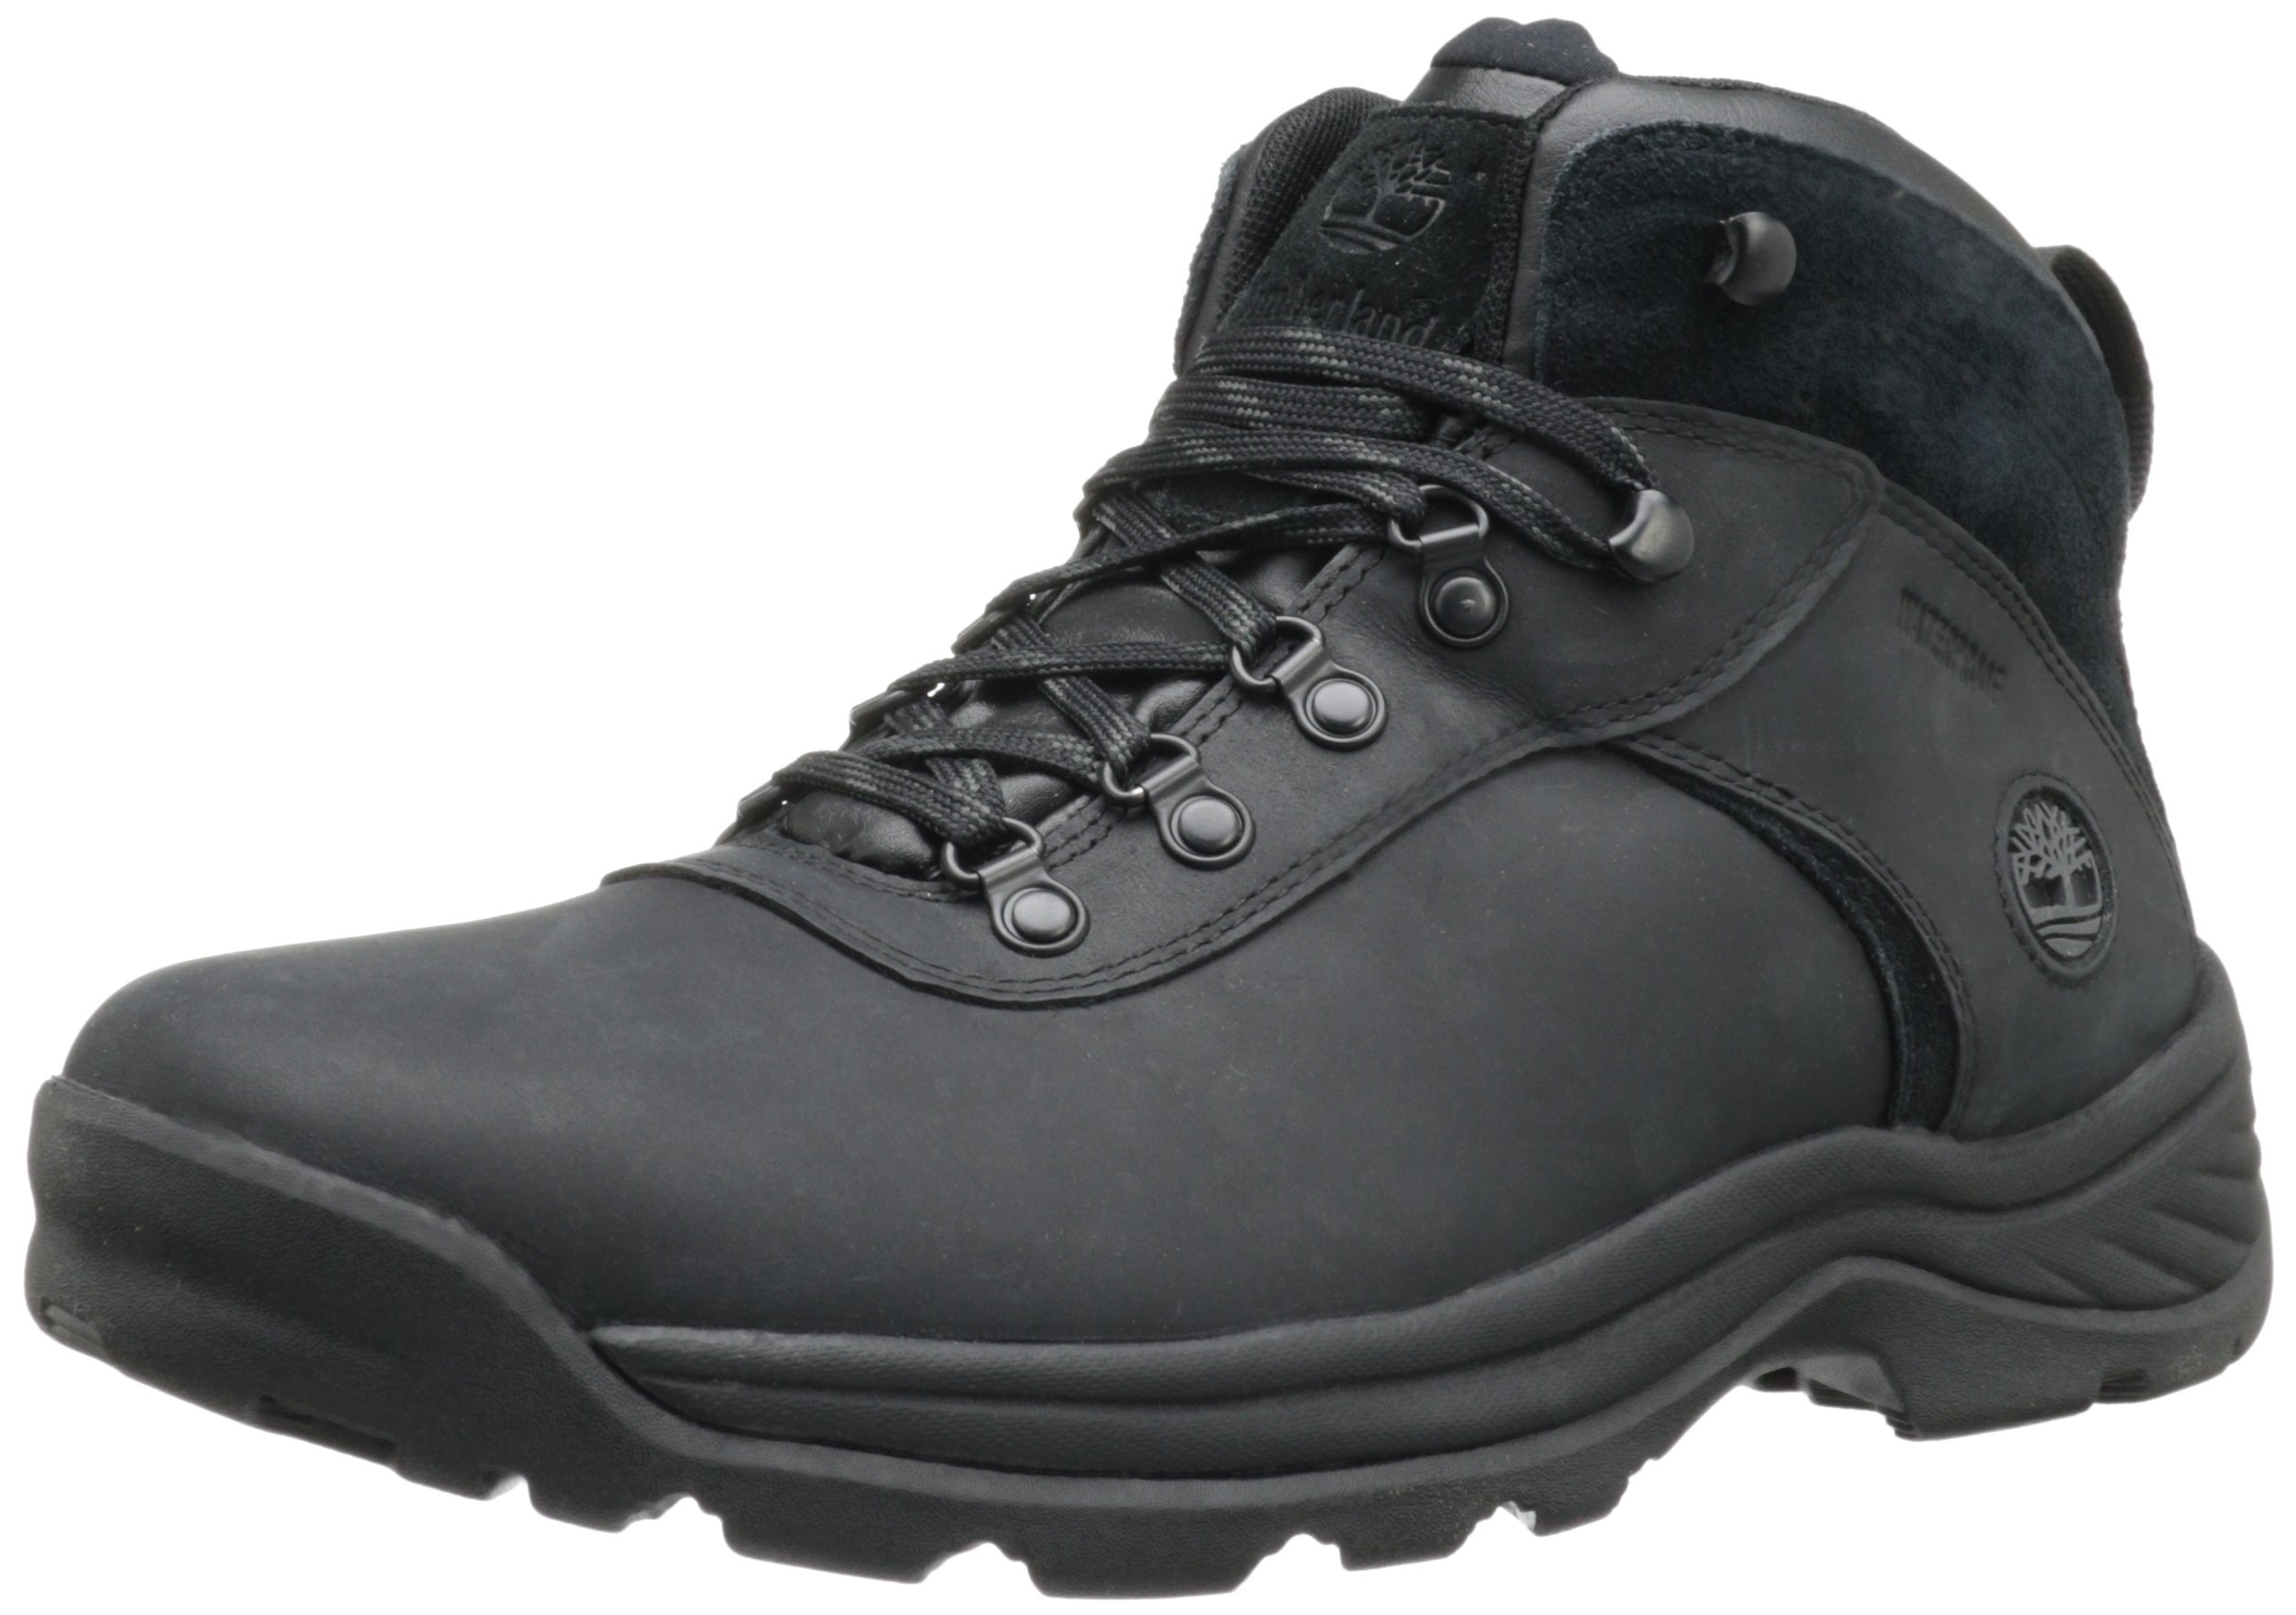 Timberland Men's Flume Waterproof Boot,Black,7 M US